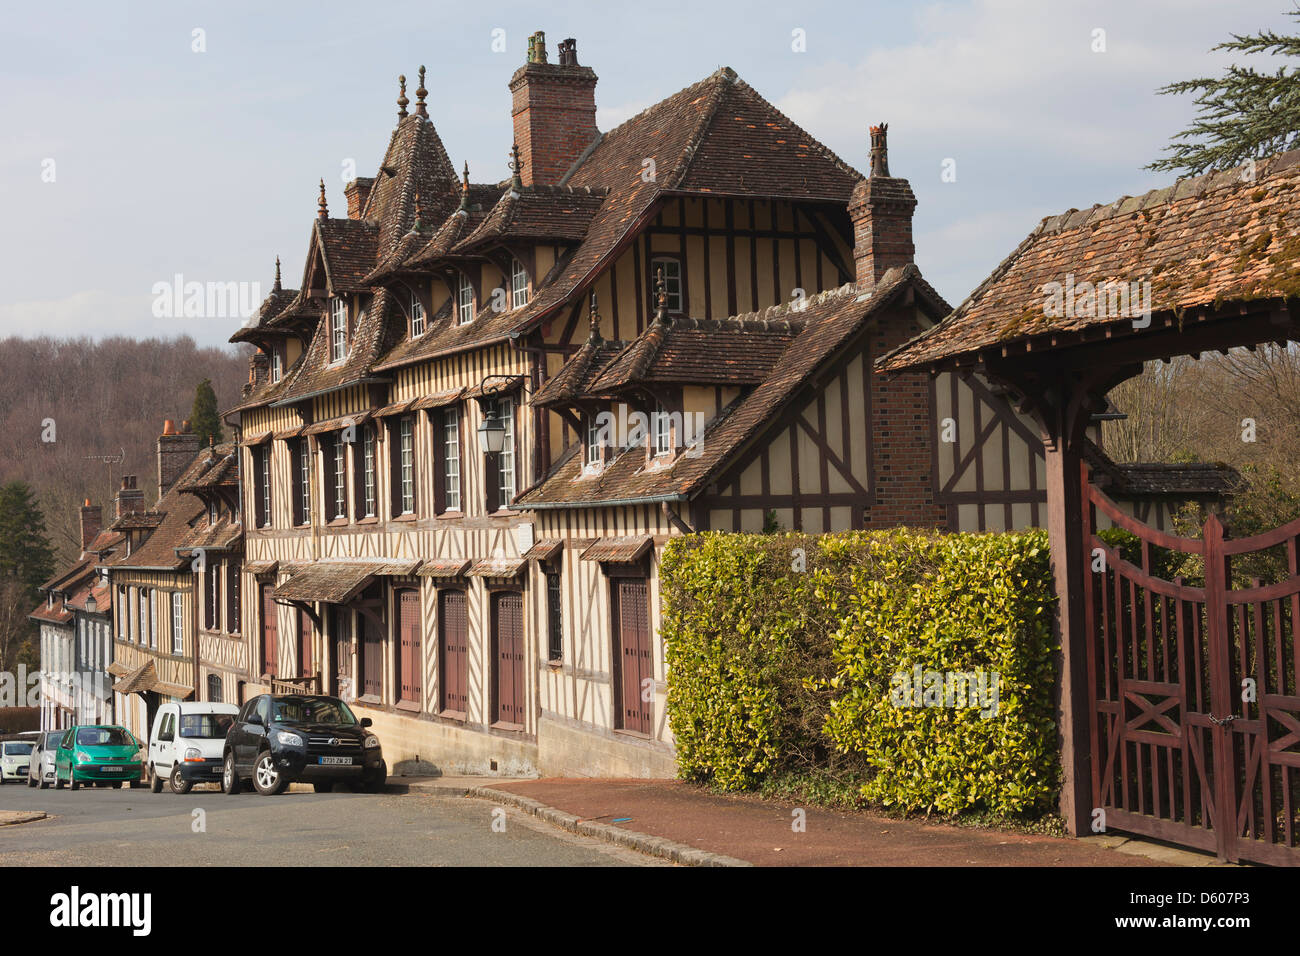 The Mansion Nearest Where Composer Maurice Ravel Often Stayed Stock Photo Alamy